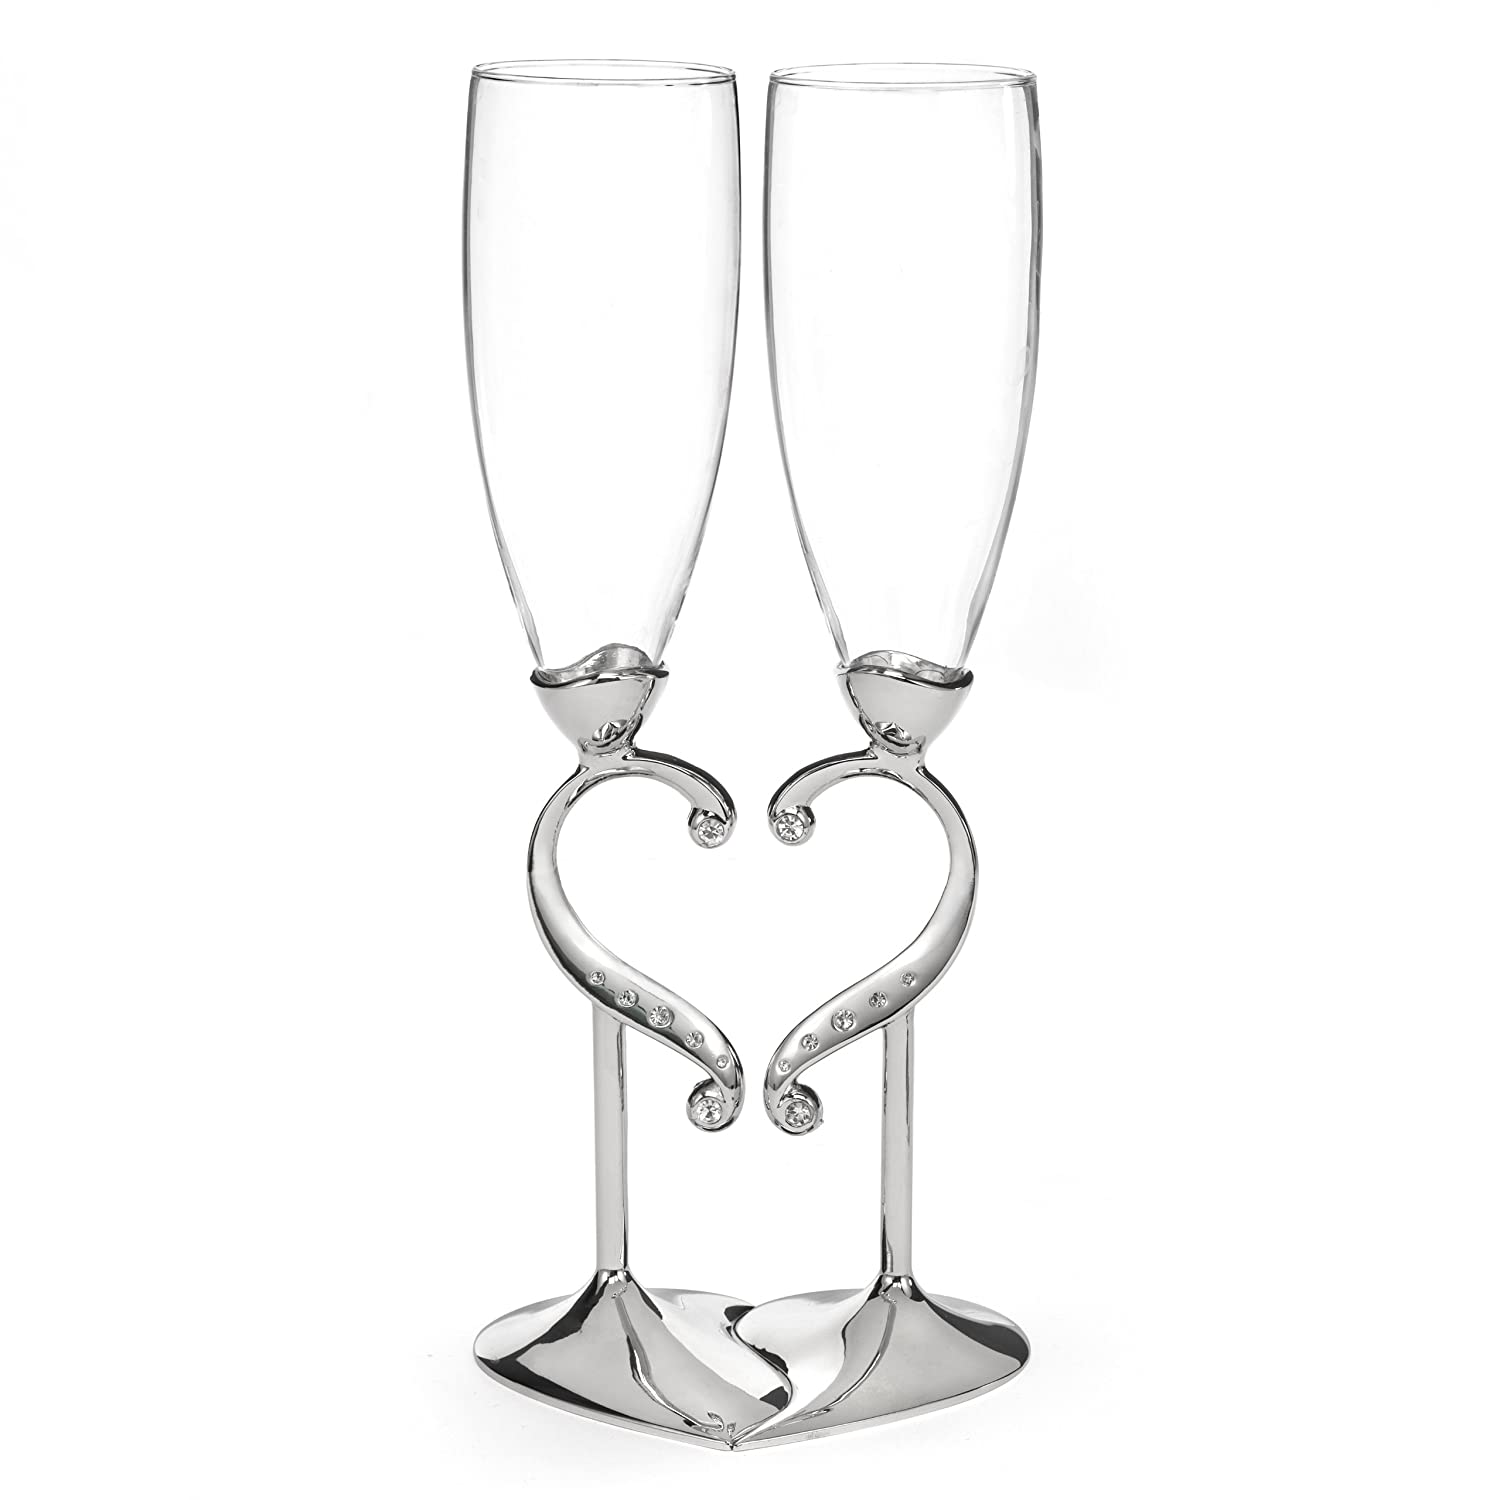 Hortense B. Hewitt Champagne Toasting Flutes Wedding Accessories, Linked Love